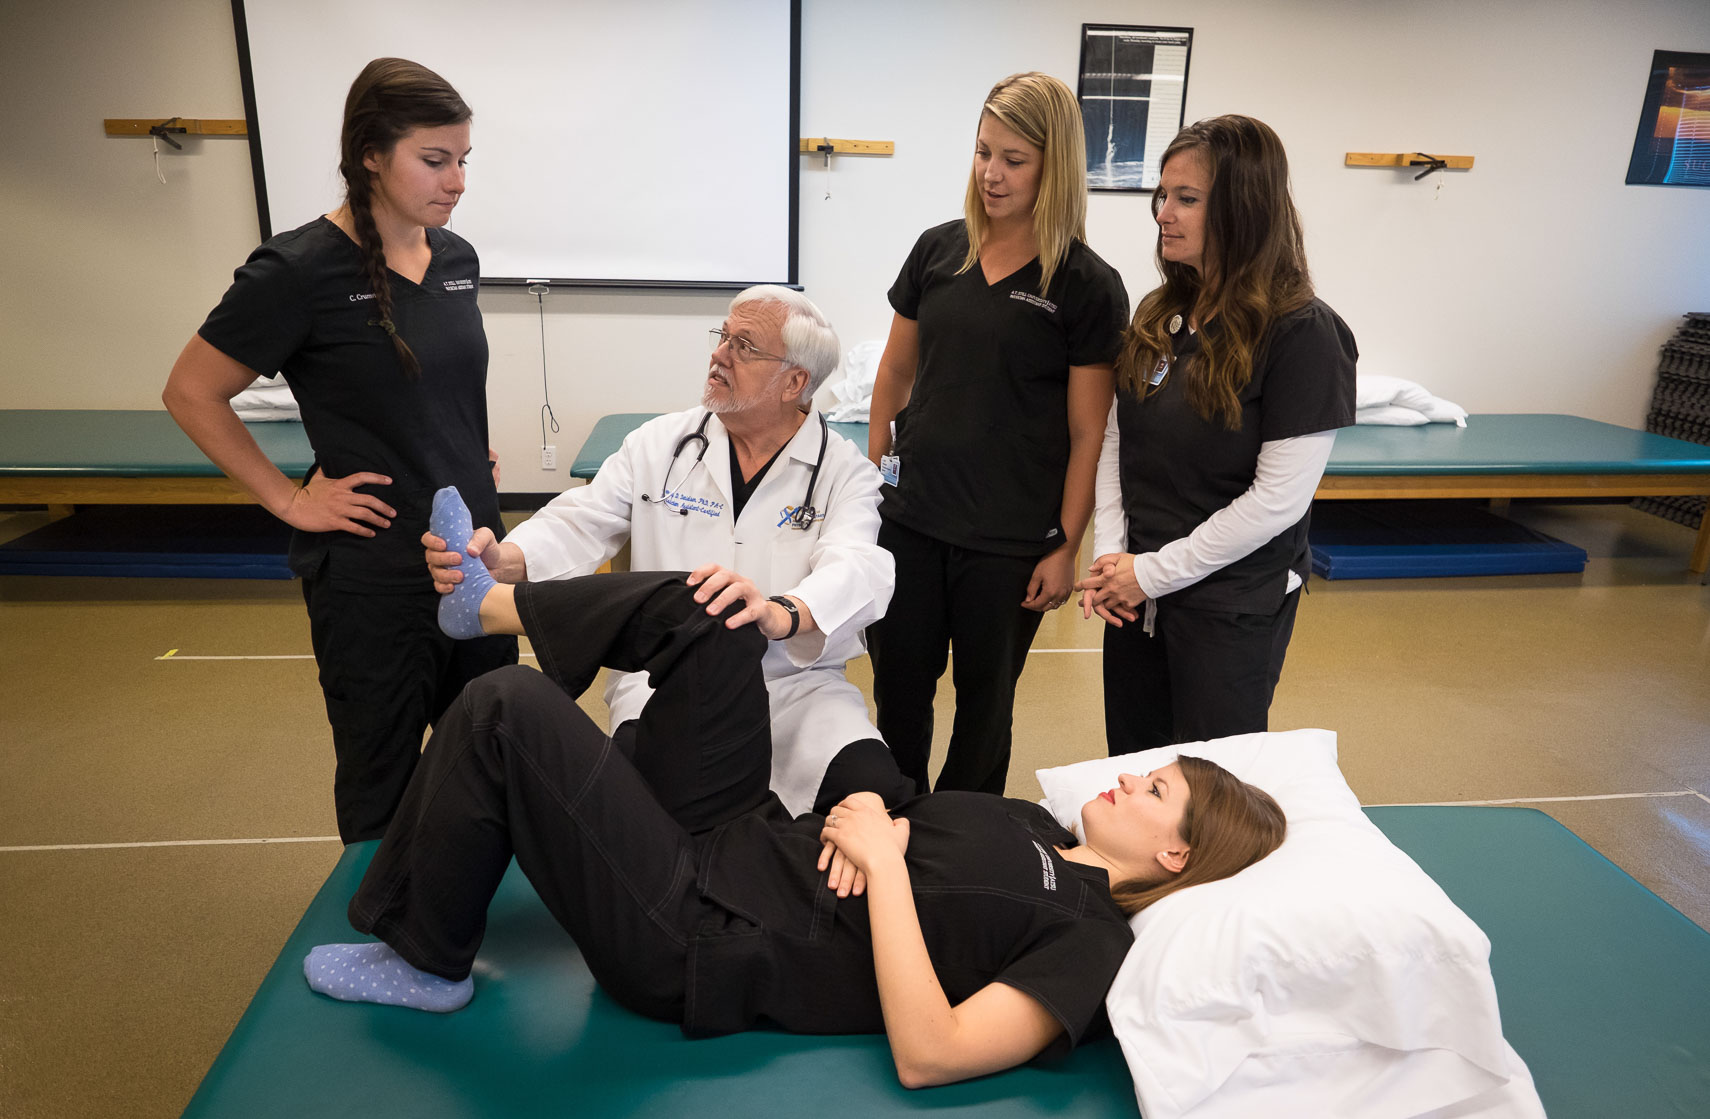 PA Danielsen Works with Students at Arizona School of Health Sciences